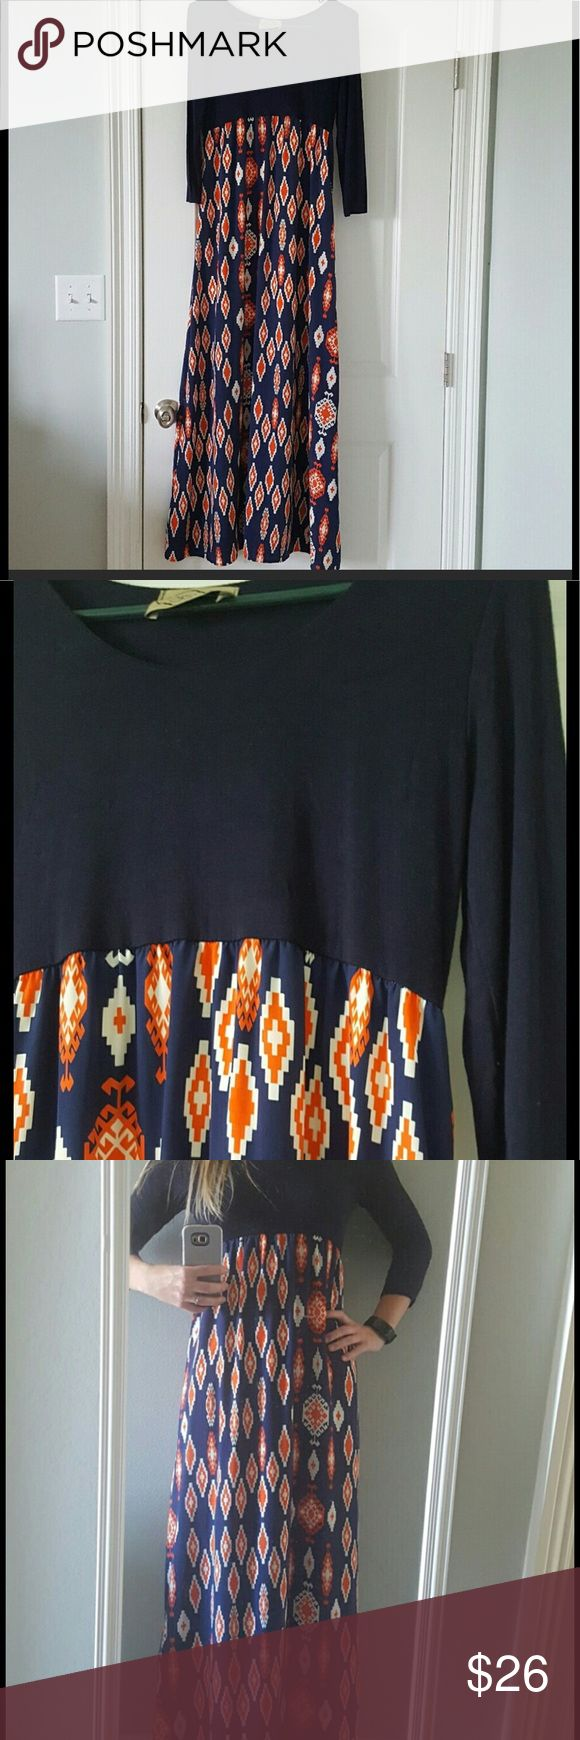 Judith March Maxi! Medium I wore this to an Auburn game. The colors would also work for Gator fans, or maybe you just like Navy and Auburn! 😊 It is from the DeJaVu Boutique, which is owned by Judith March. Good Used Condition. Lined. Judith March Dresses Maxi